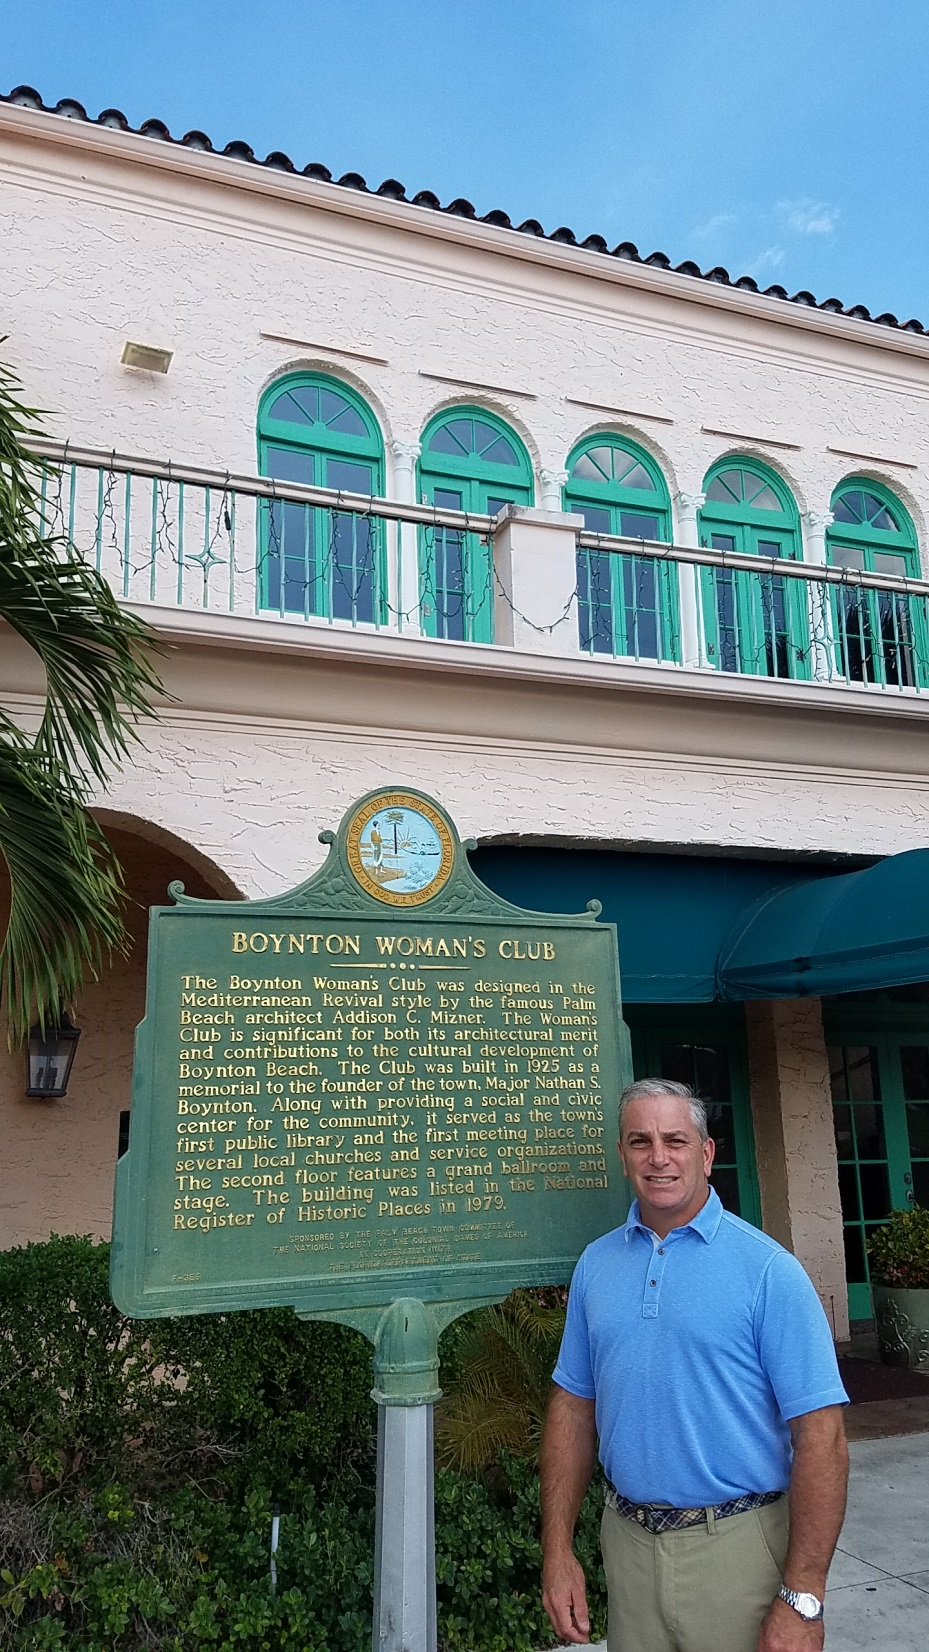 Dan Martucci at Boynton Woman's Club